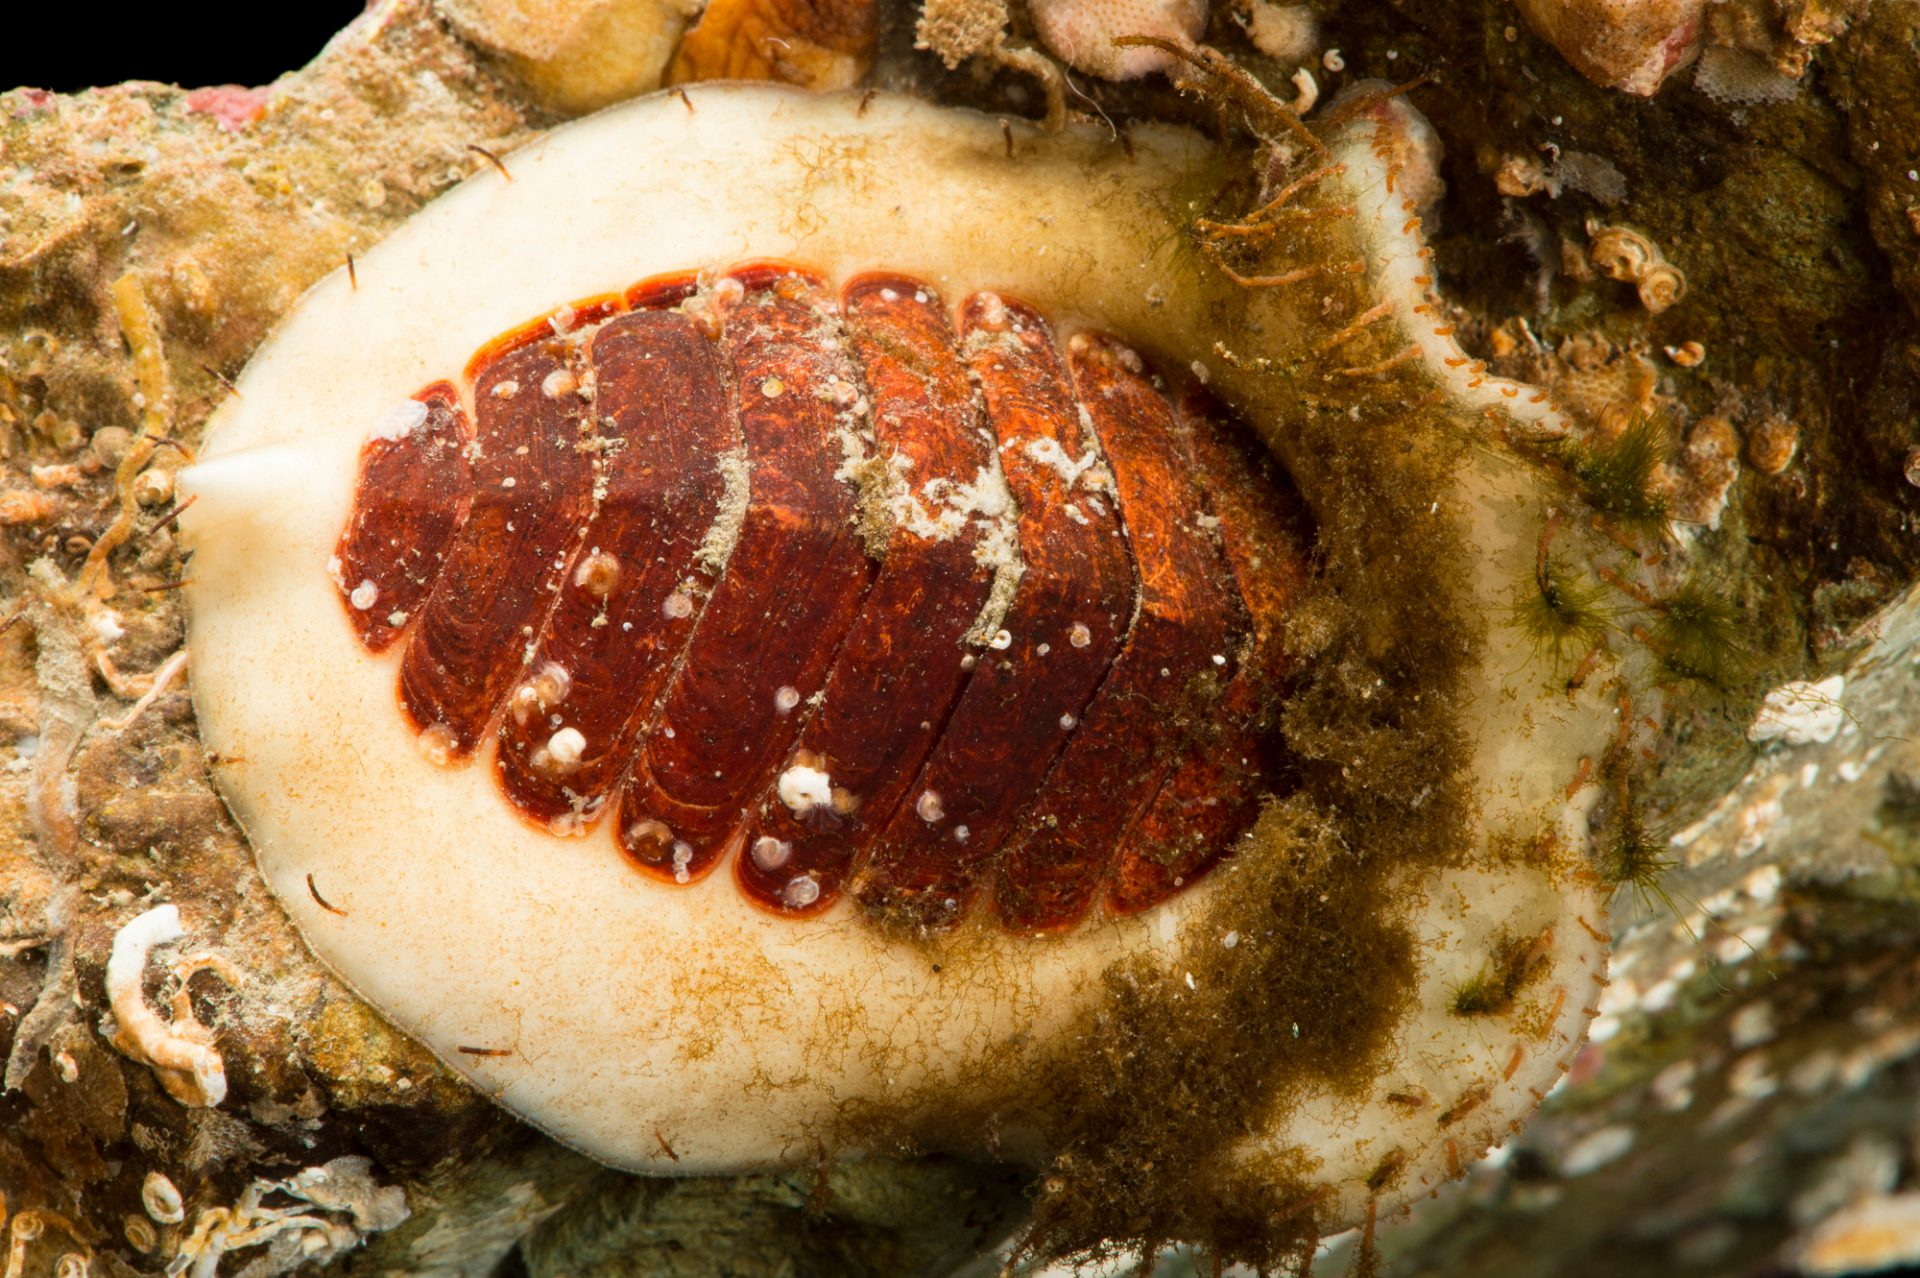 Photo: Red veiled chiton (Placiphorella rufa) at the Alaska SeaLife Center in Seward, AK.